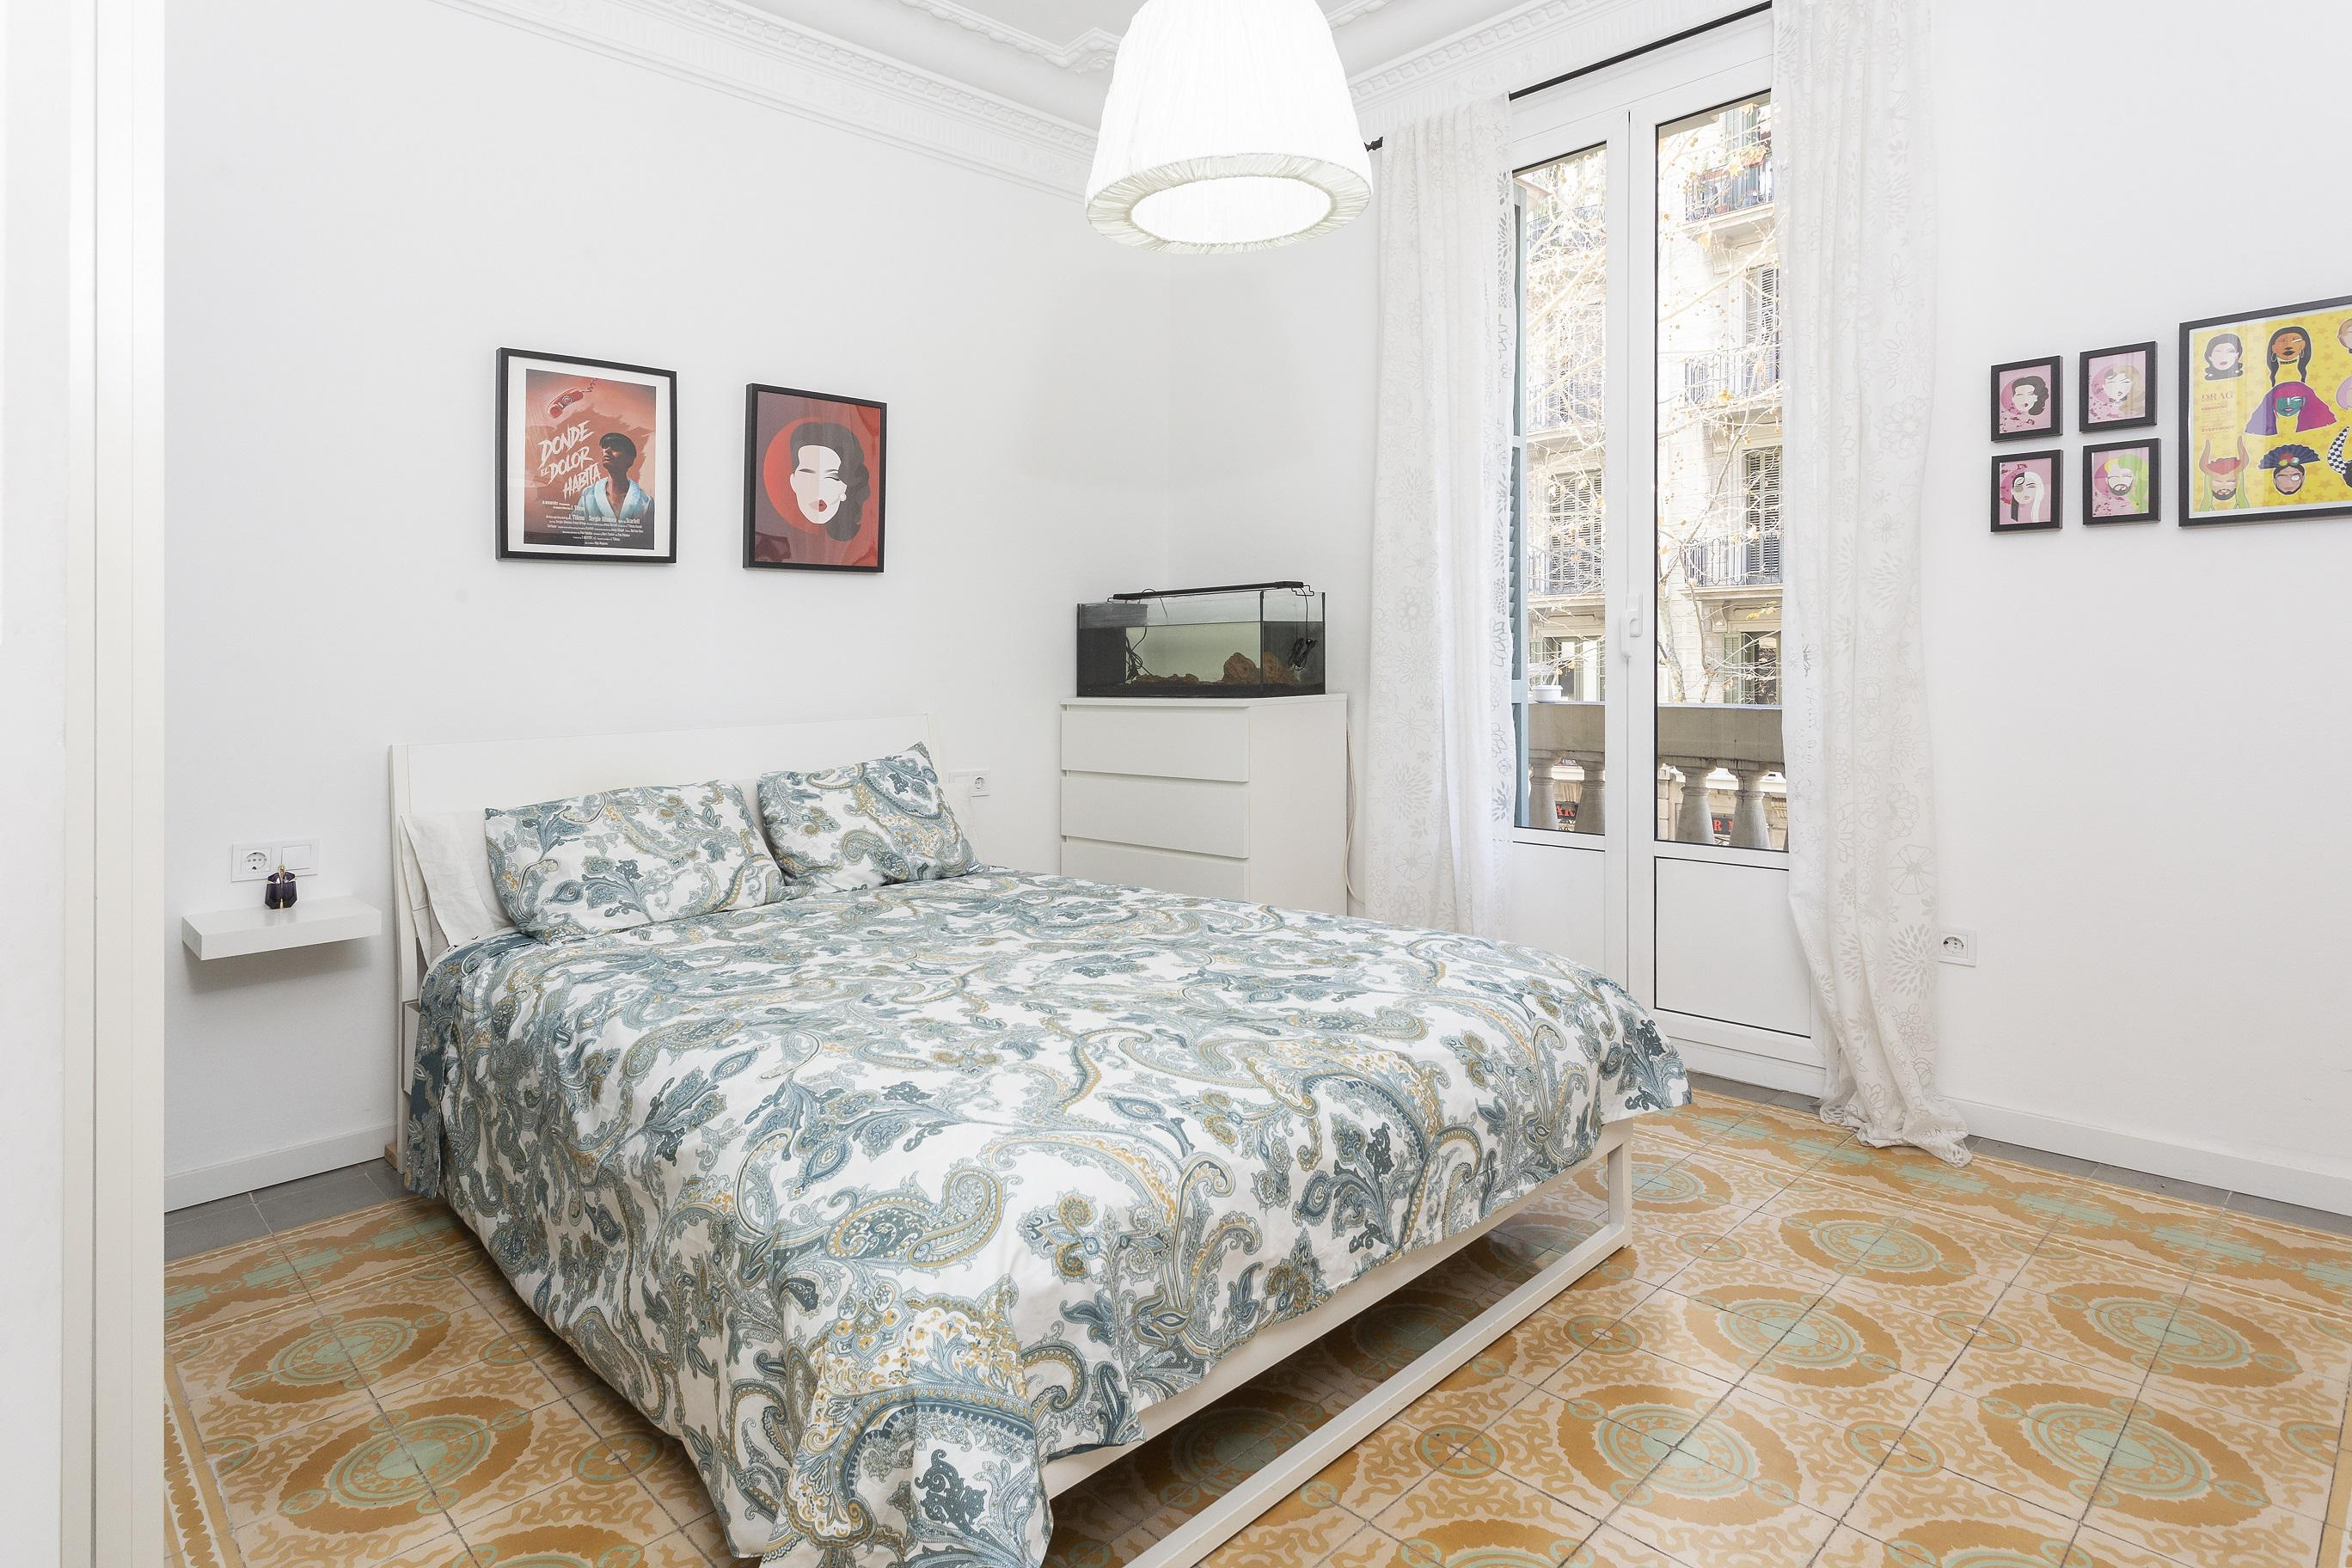 236190 Apartment for sale in Eixample, Old Left Eixample 18